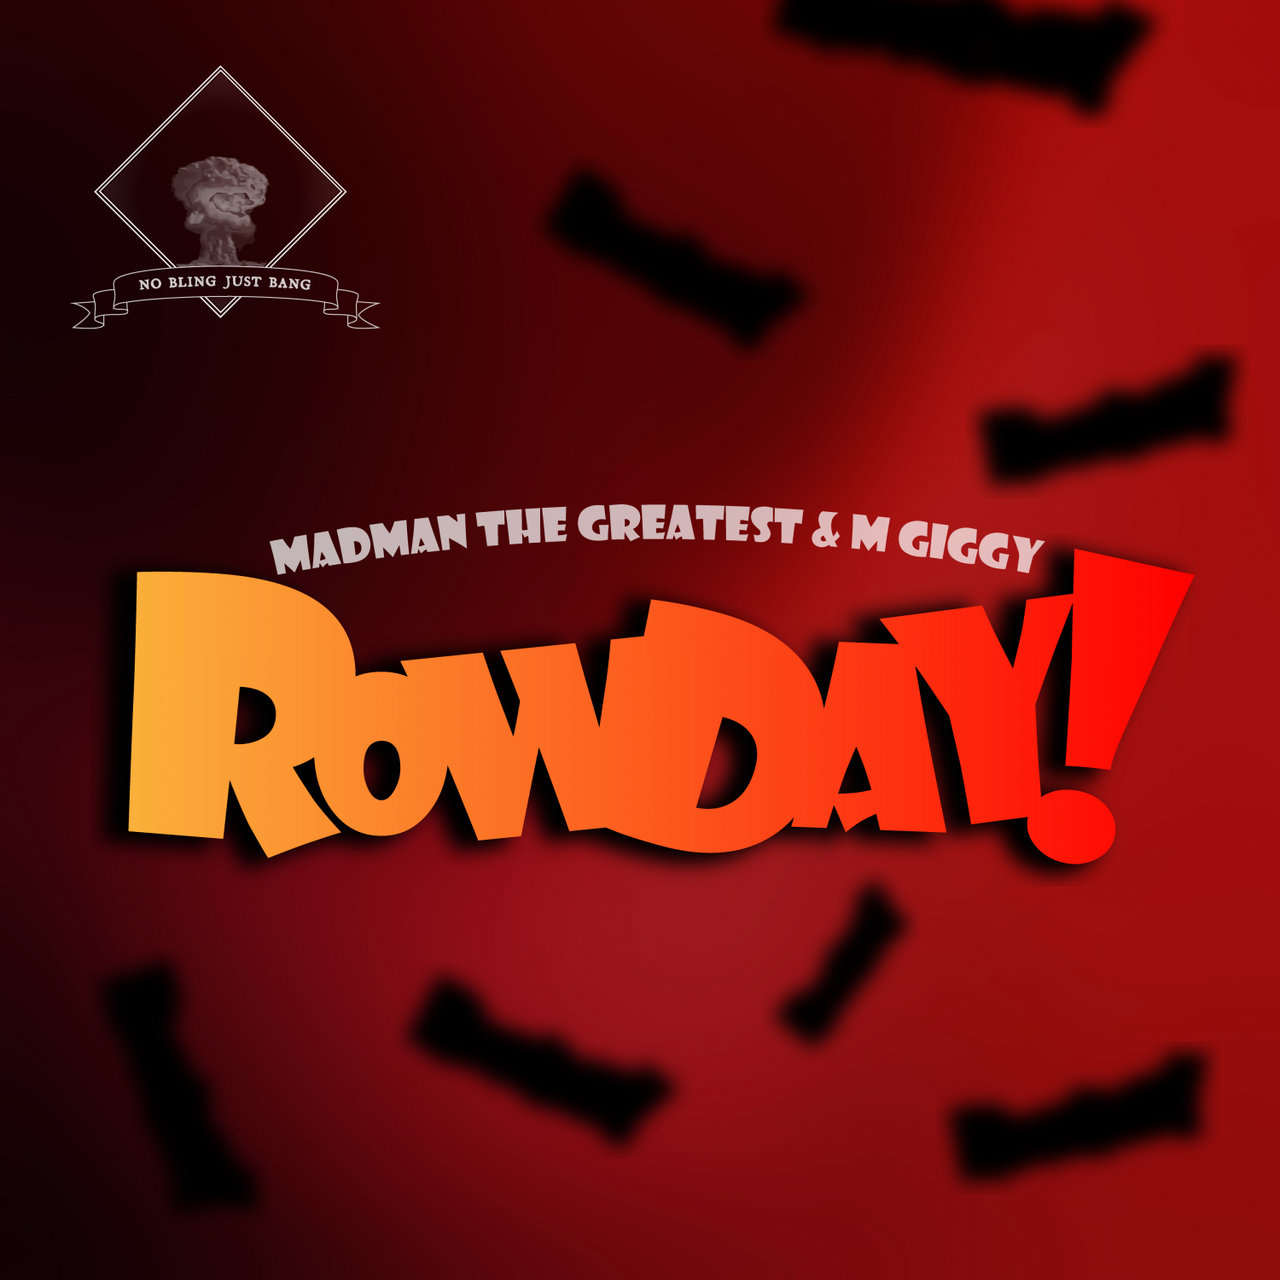 Rowday